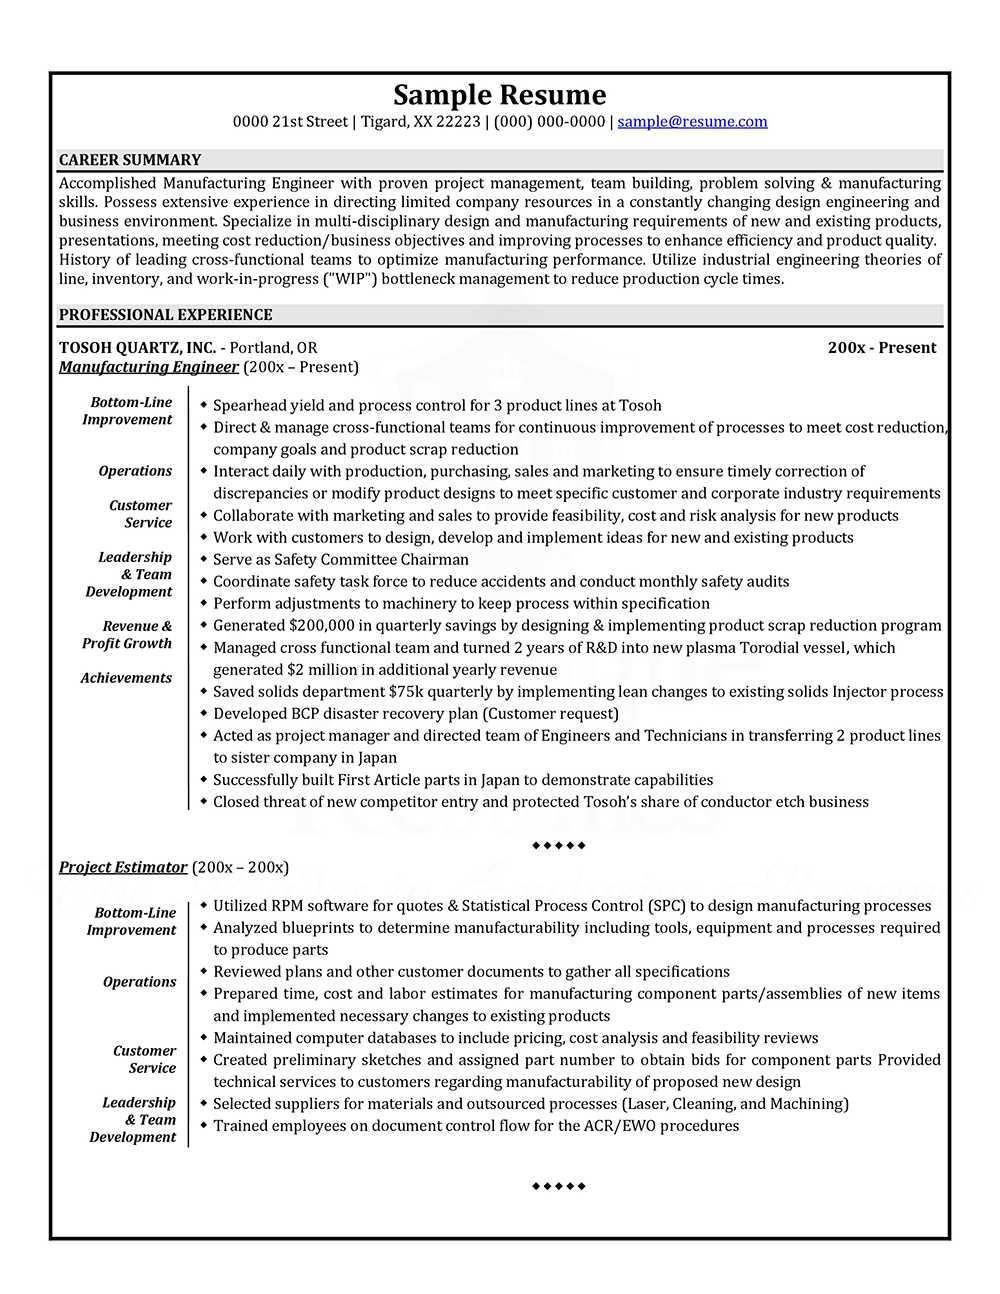 Premium Resume Writing Services Executive Resume Writing